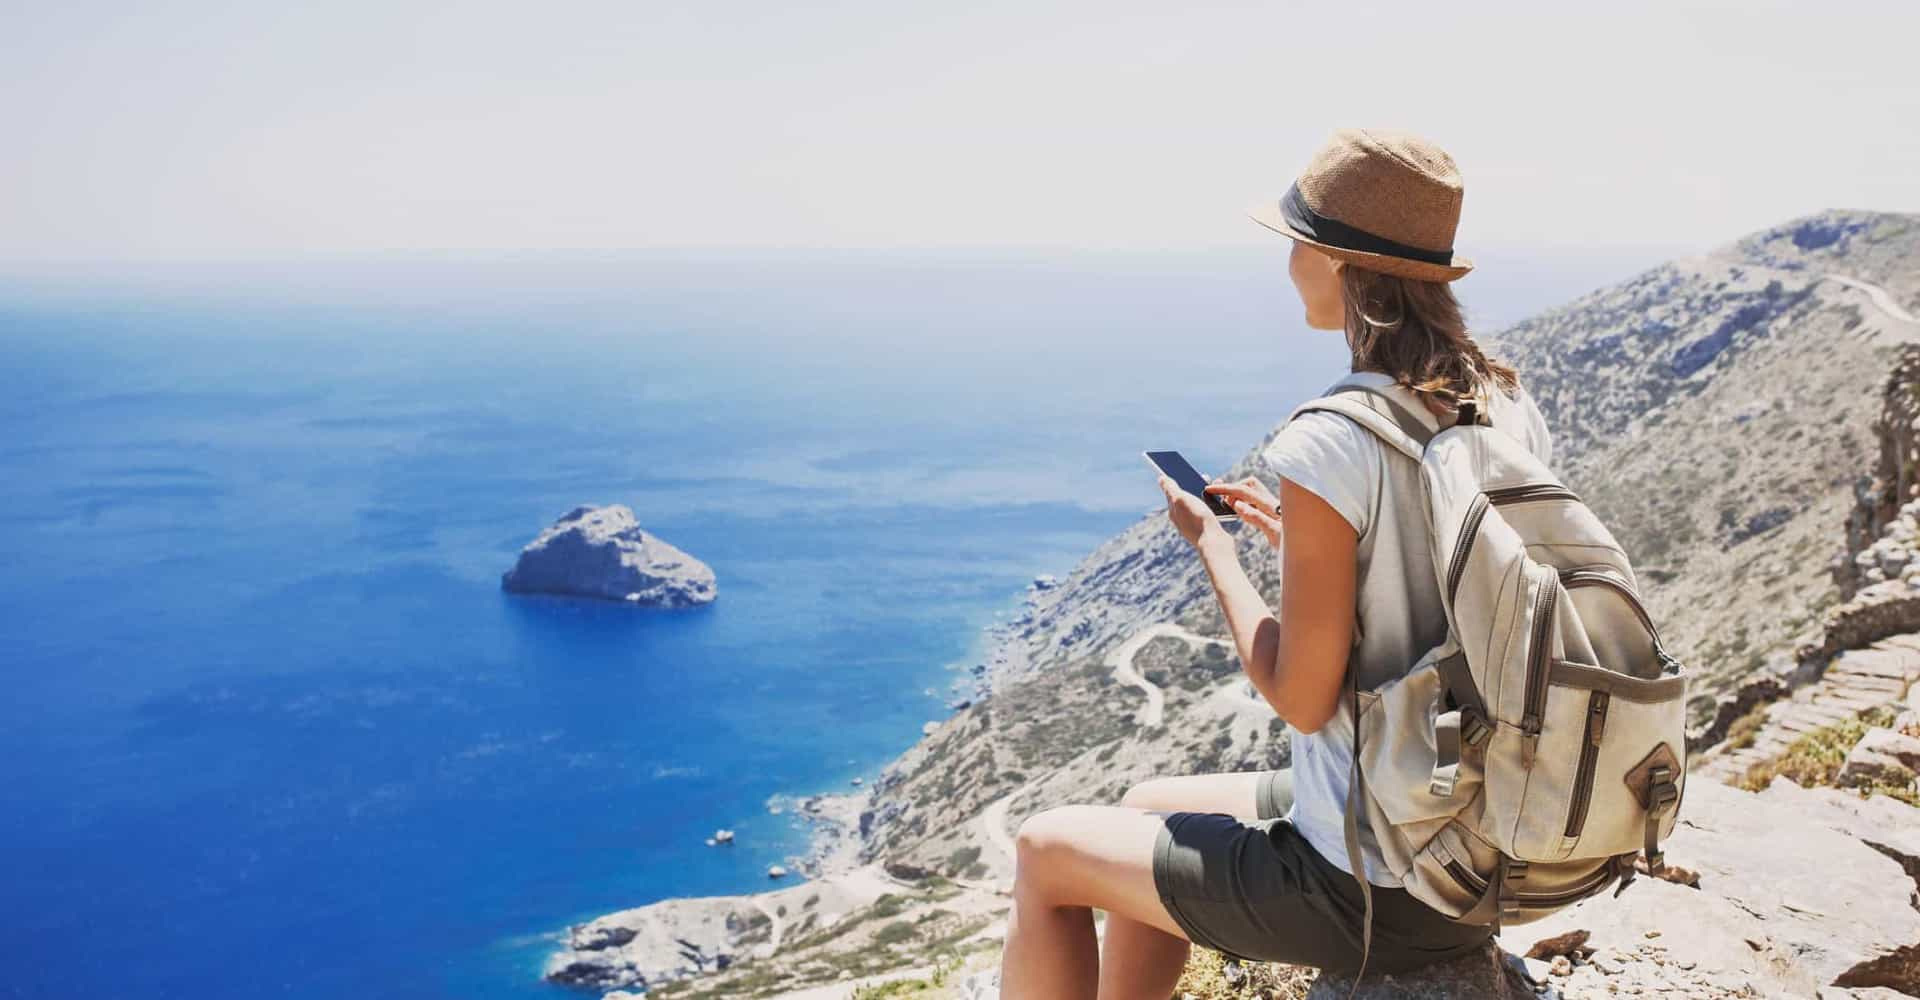 Become a minimalist traveller by following these tips and tricks